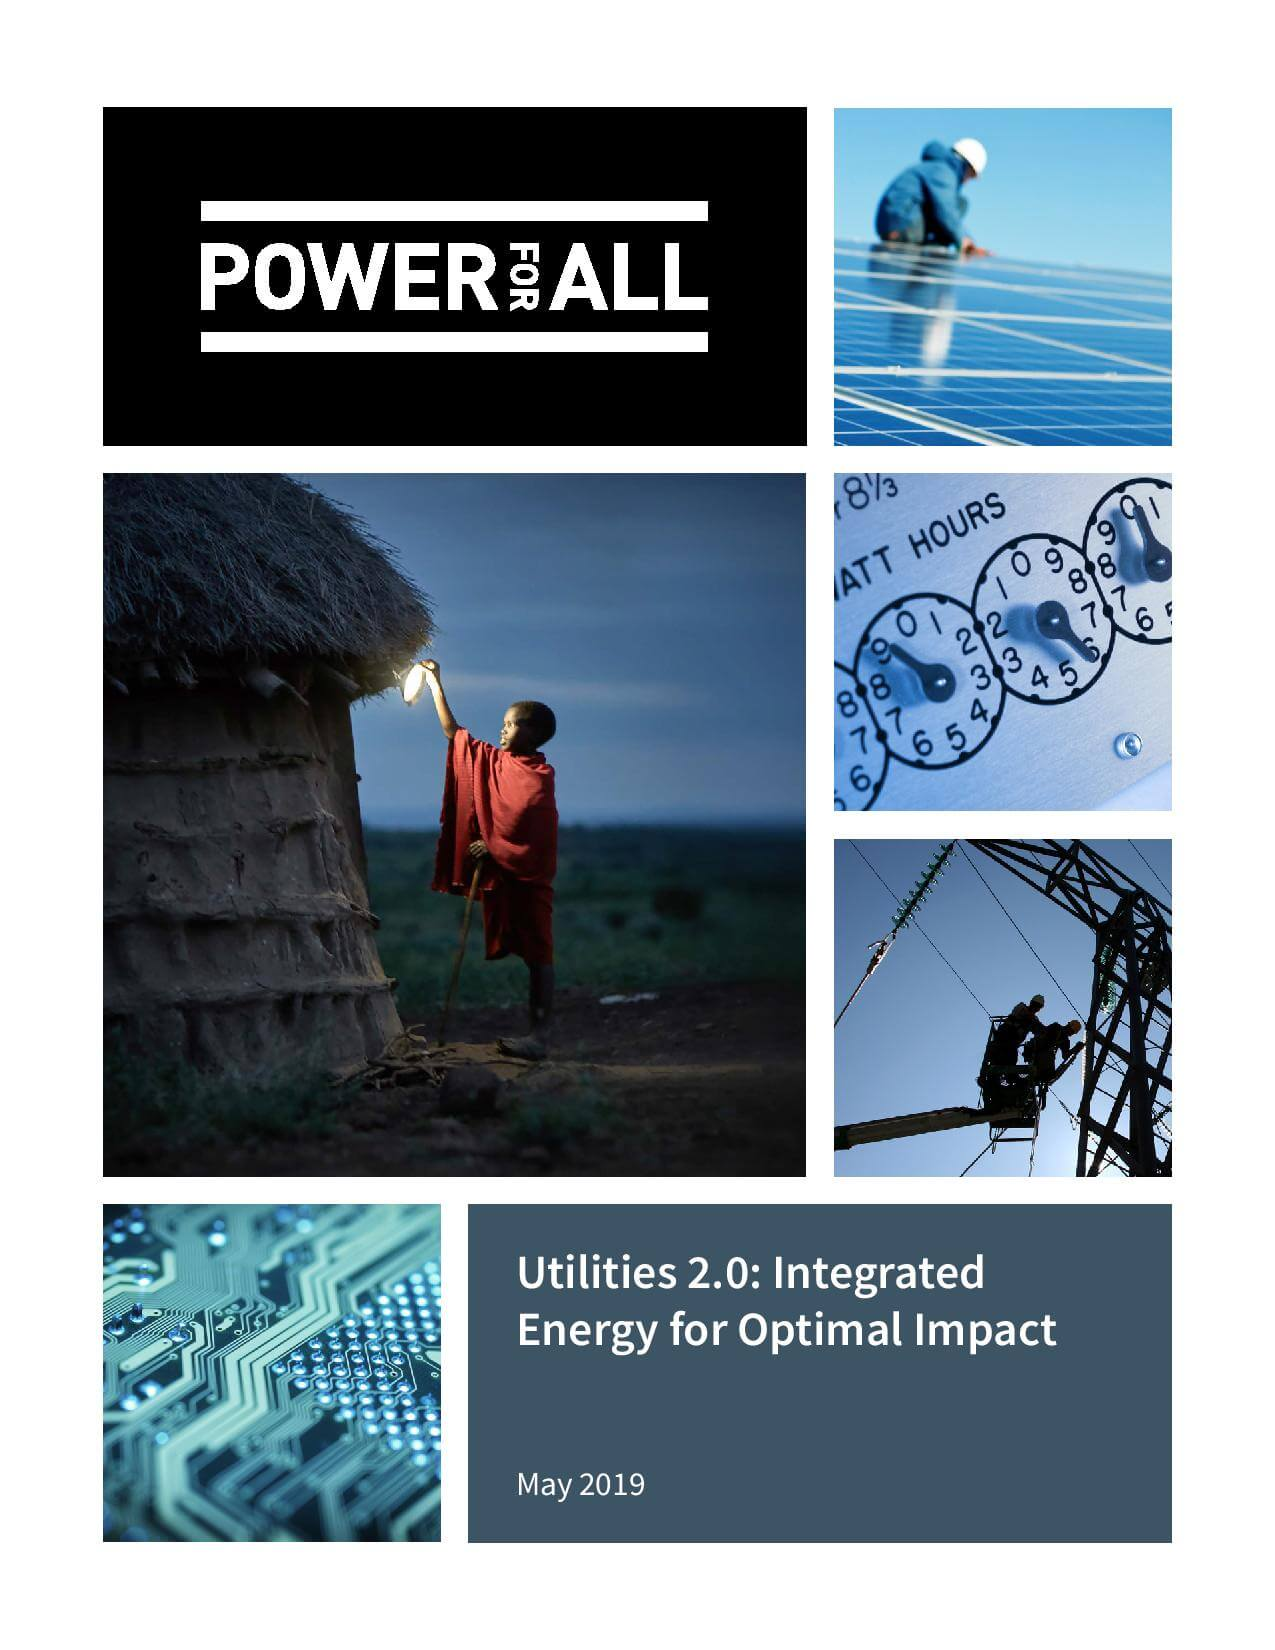 Universal Renewable Energy Access: The Utilities of the Future